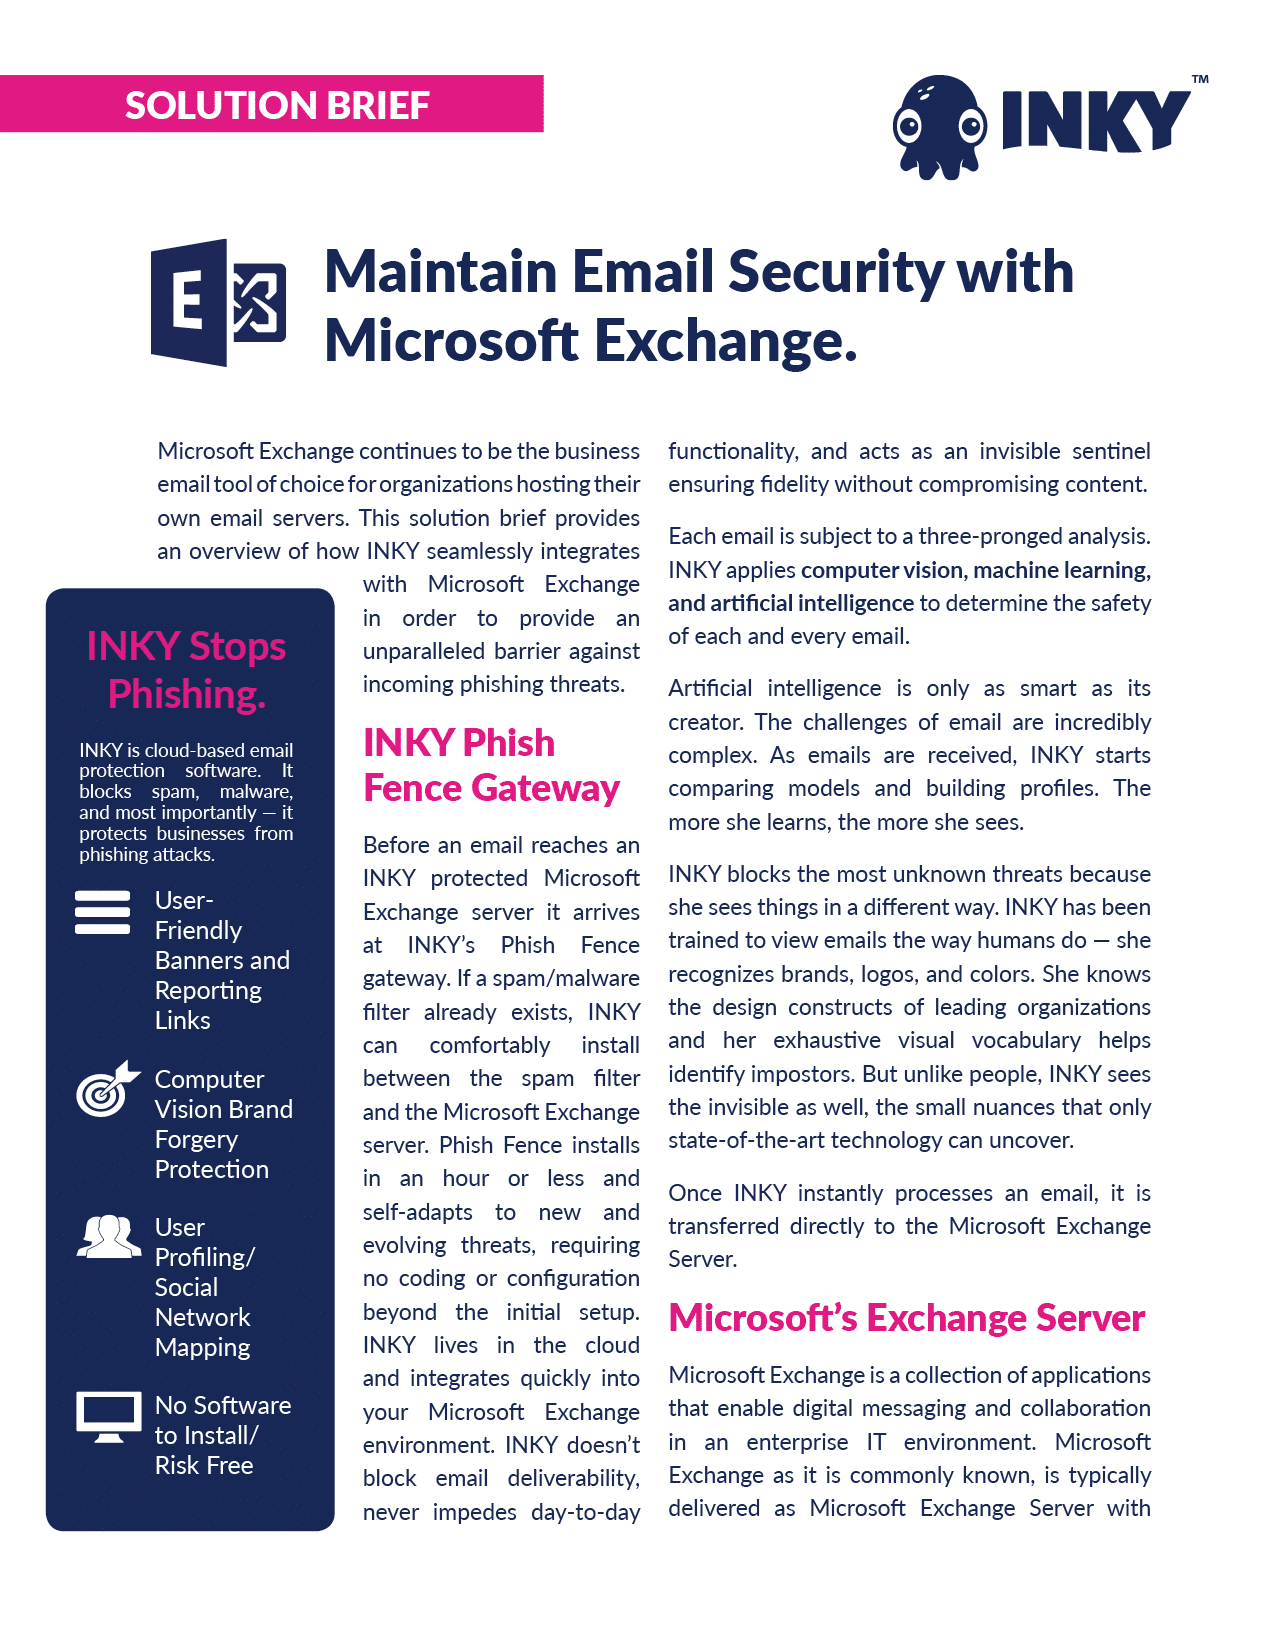 INKY and Microsoft Exchange Solution Brief